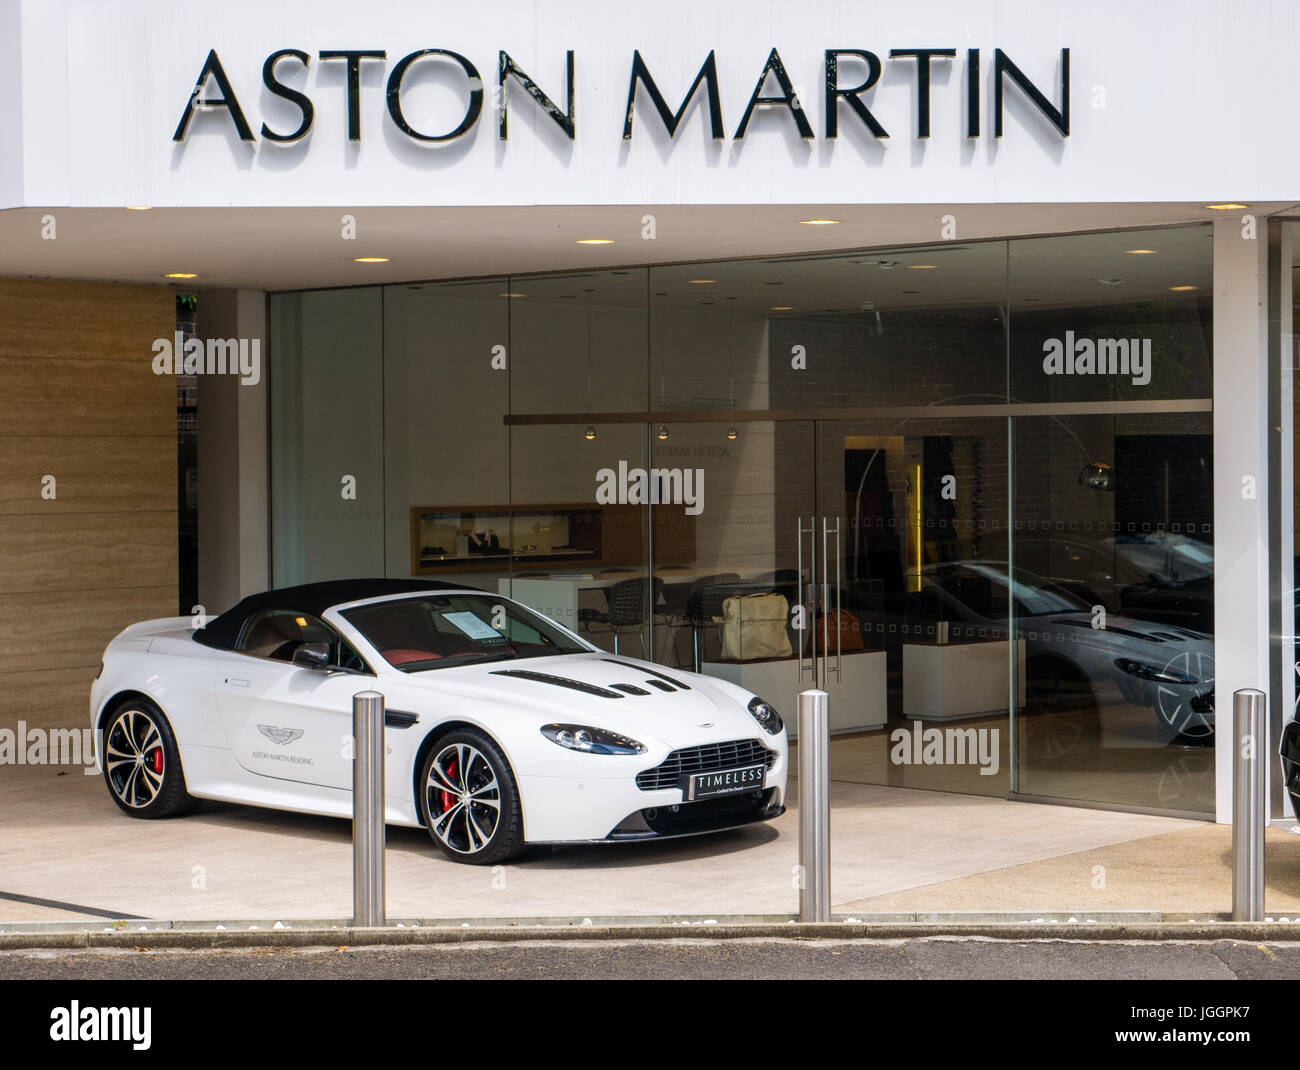 Luxury Car Dealership Dealing With Bentley Aston Martin Stock - Lamborghini car dealership